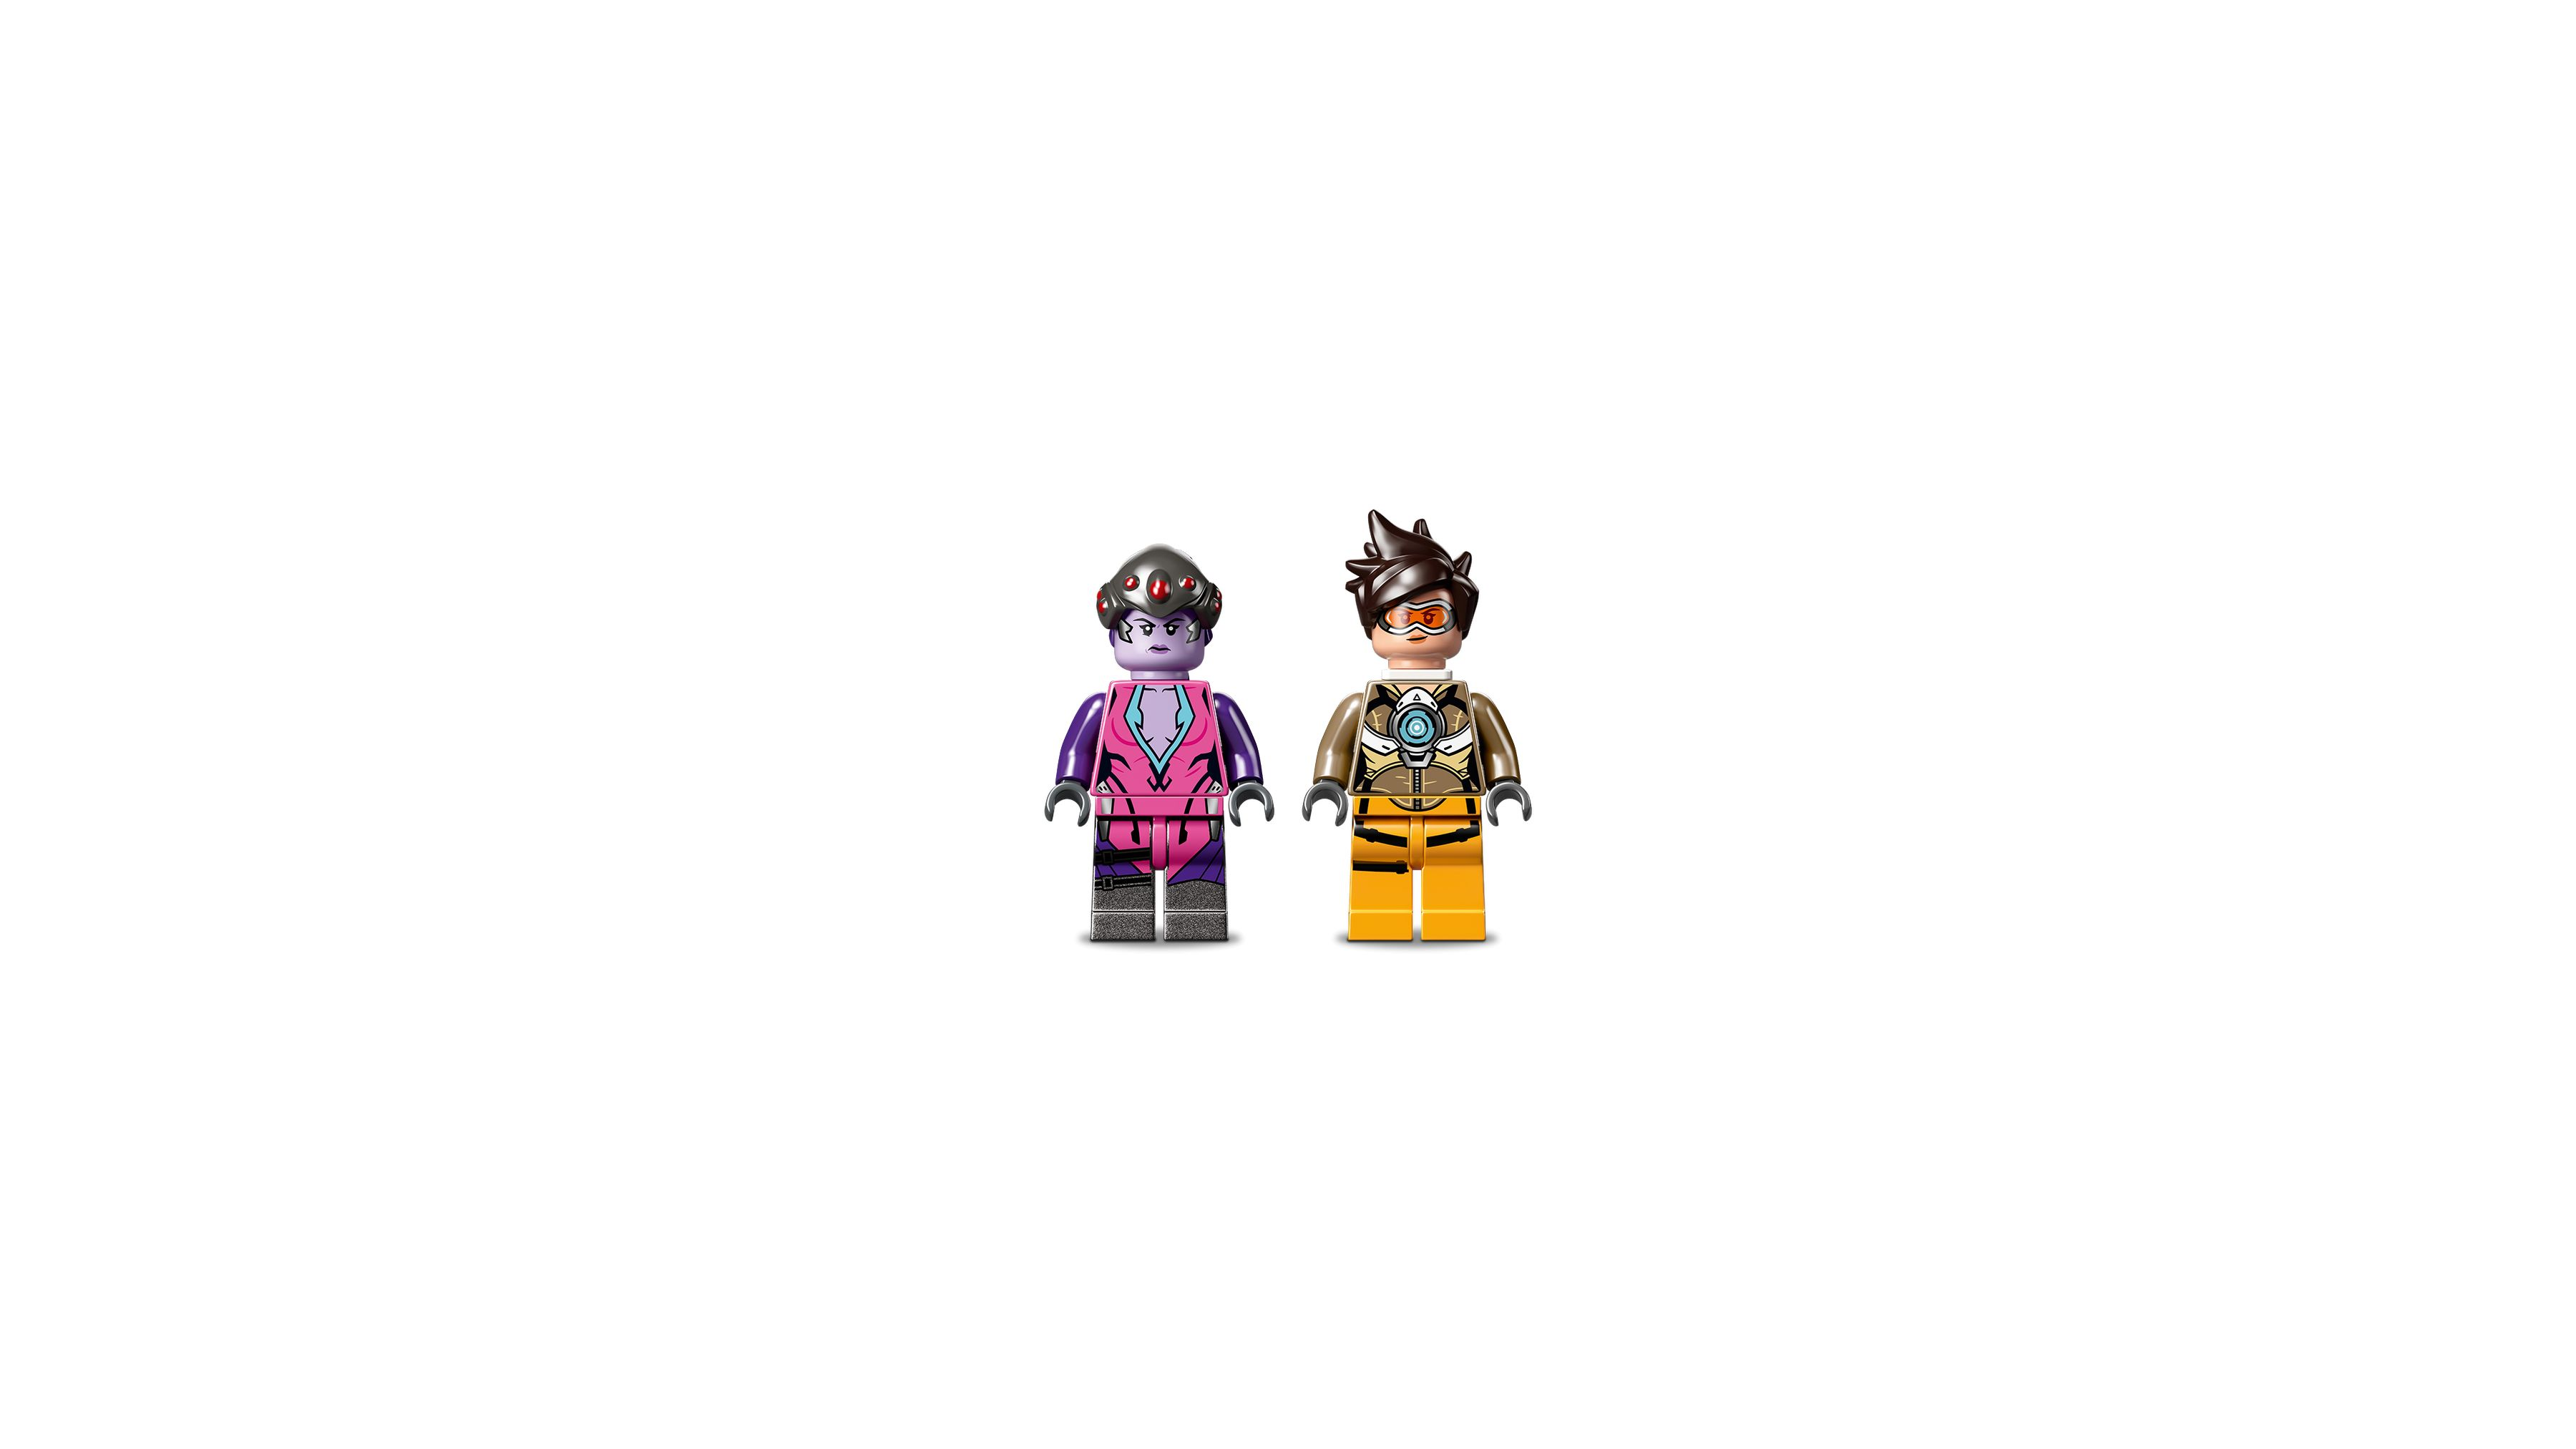 LEGO Overwatch 75970 Tracer vs. Widowmaker LEGO_75970_alt3.jpg